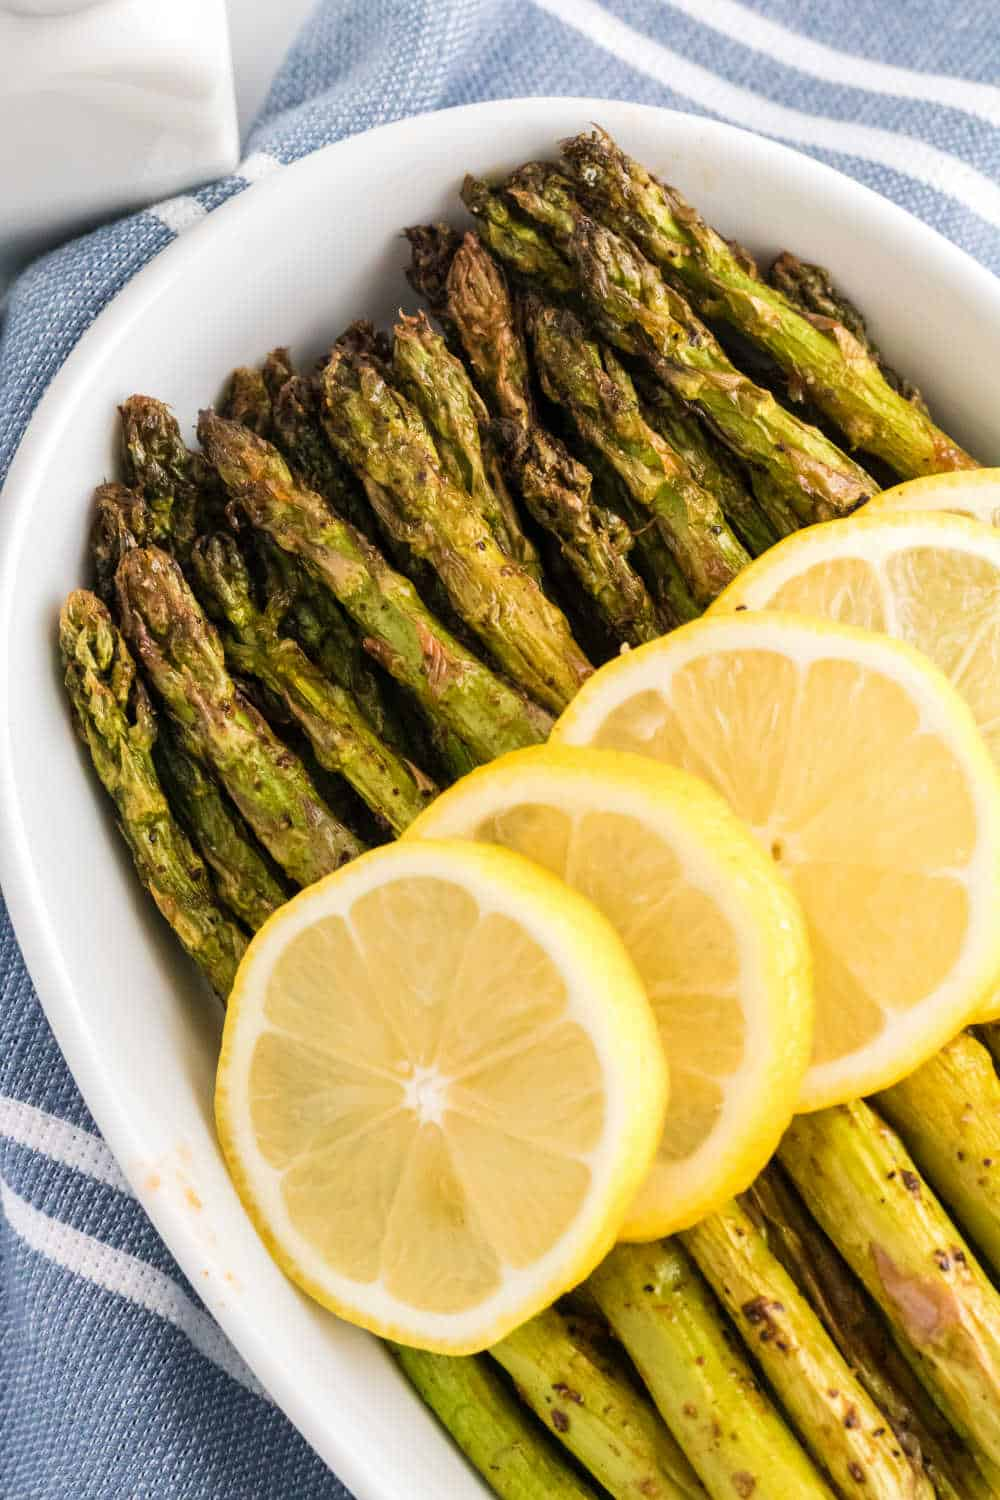 Asparagus topped with lemon slices